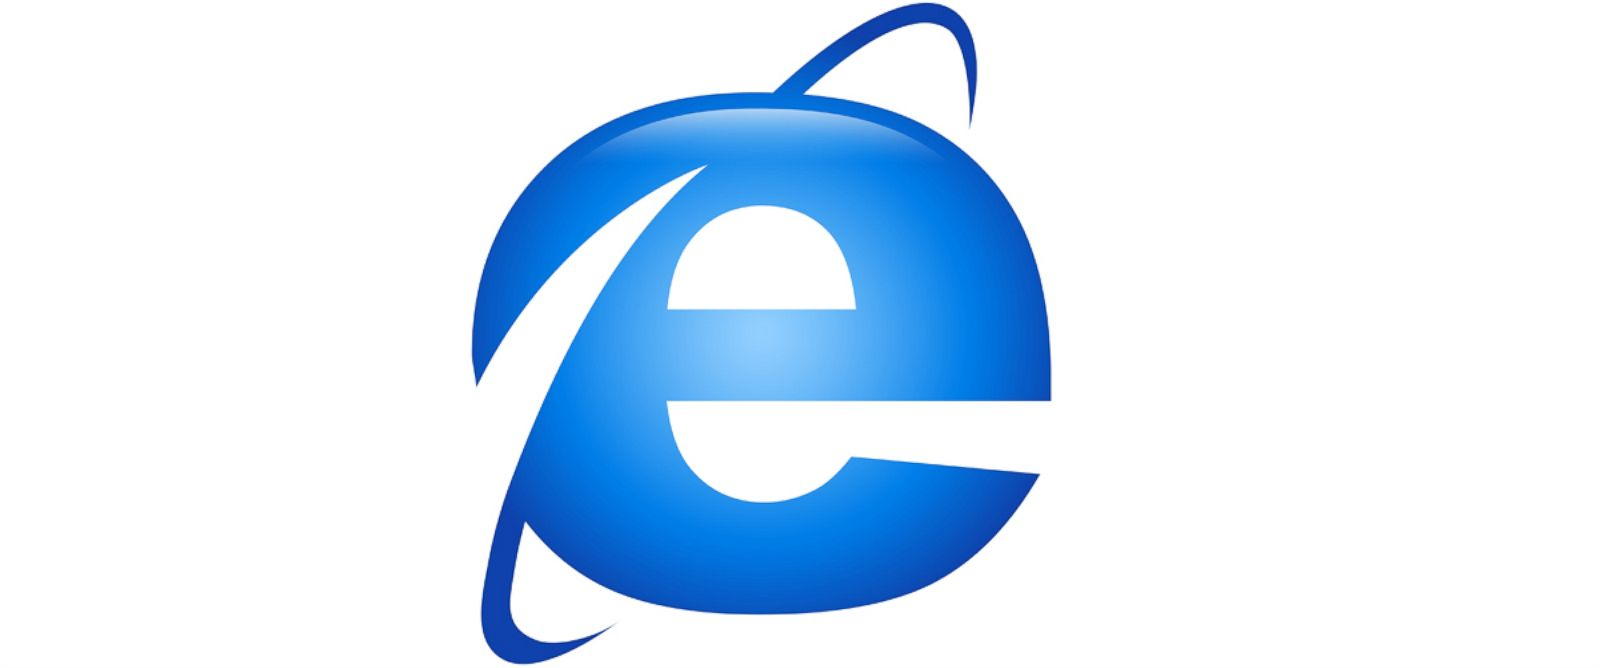 What You Need to Know About Internet Explorer Fix - ABC News